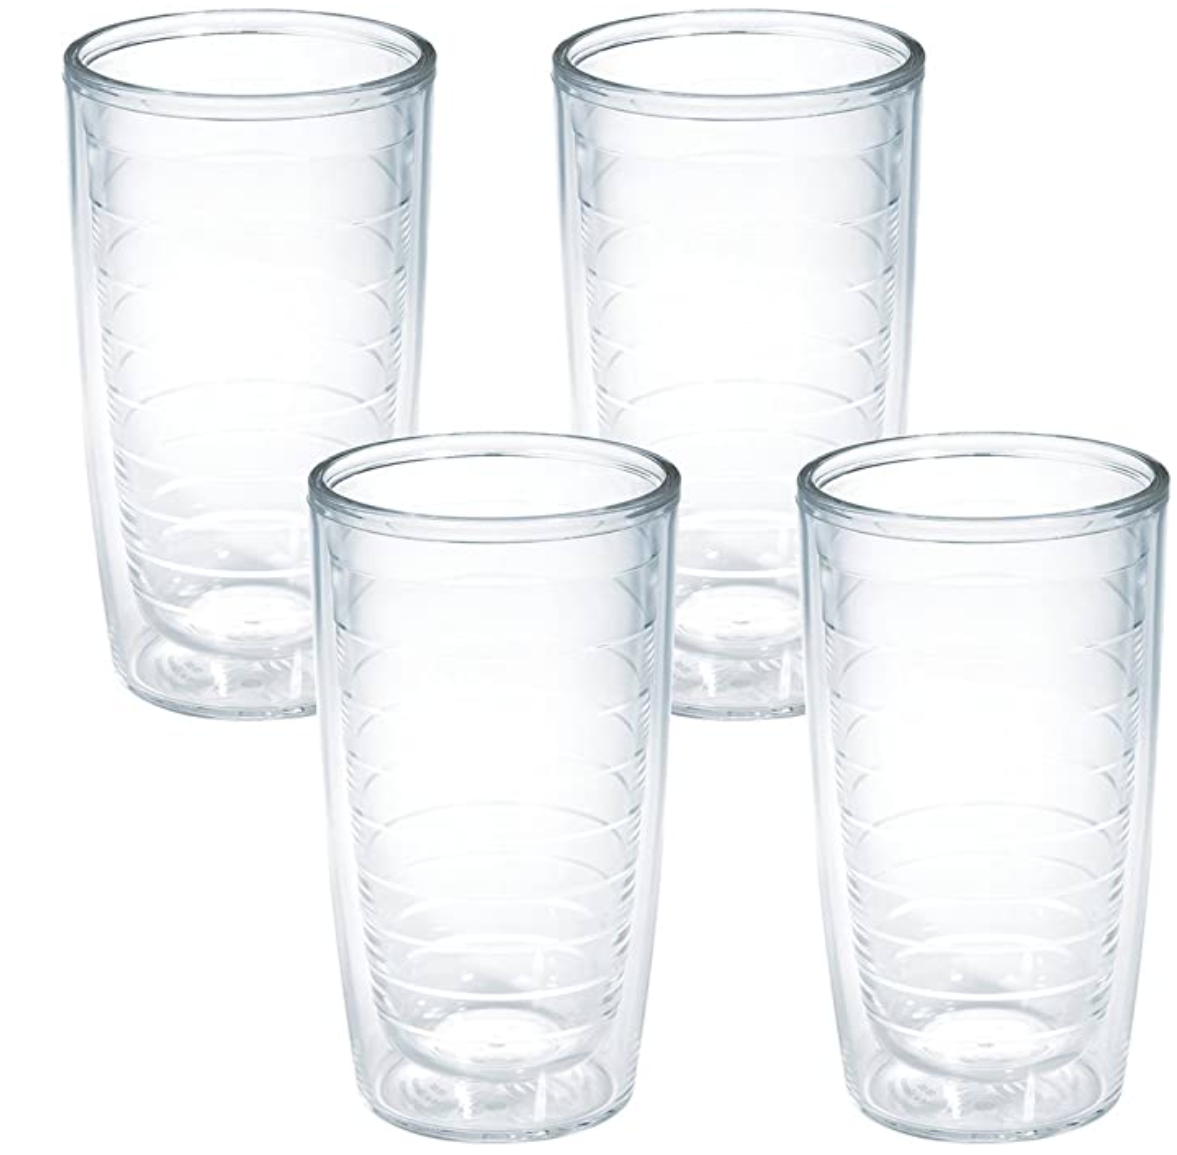 tervis tumblers   Best Amazon Products by popular Houston life and style blog: image of Amazon clear tumbler glasses.